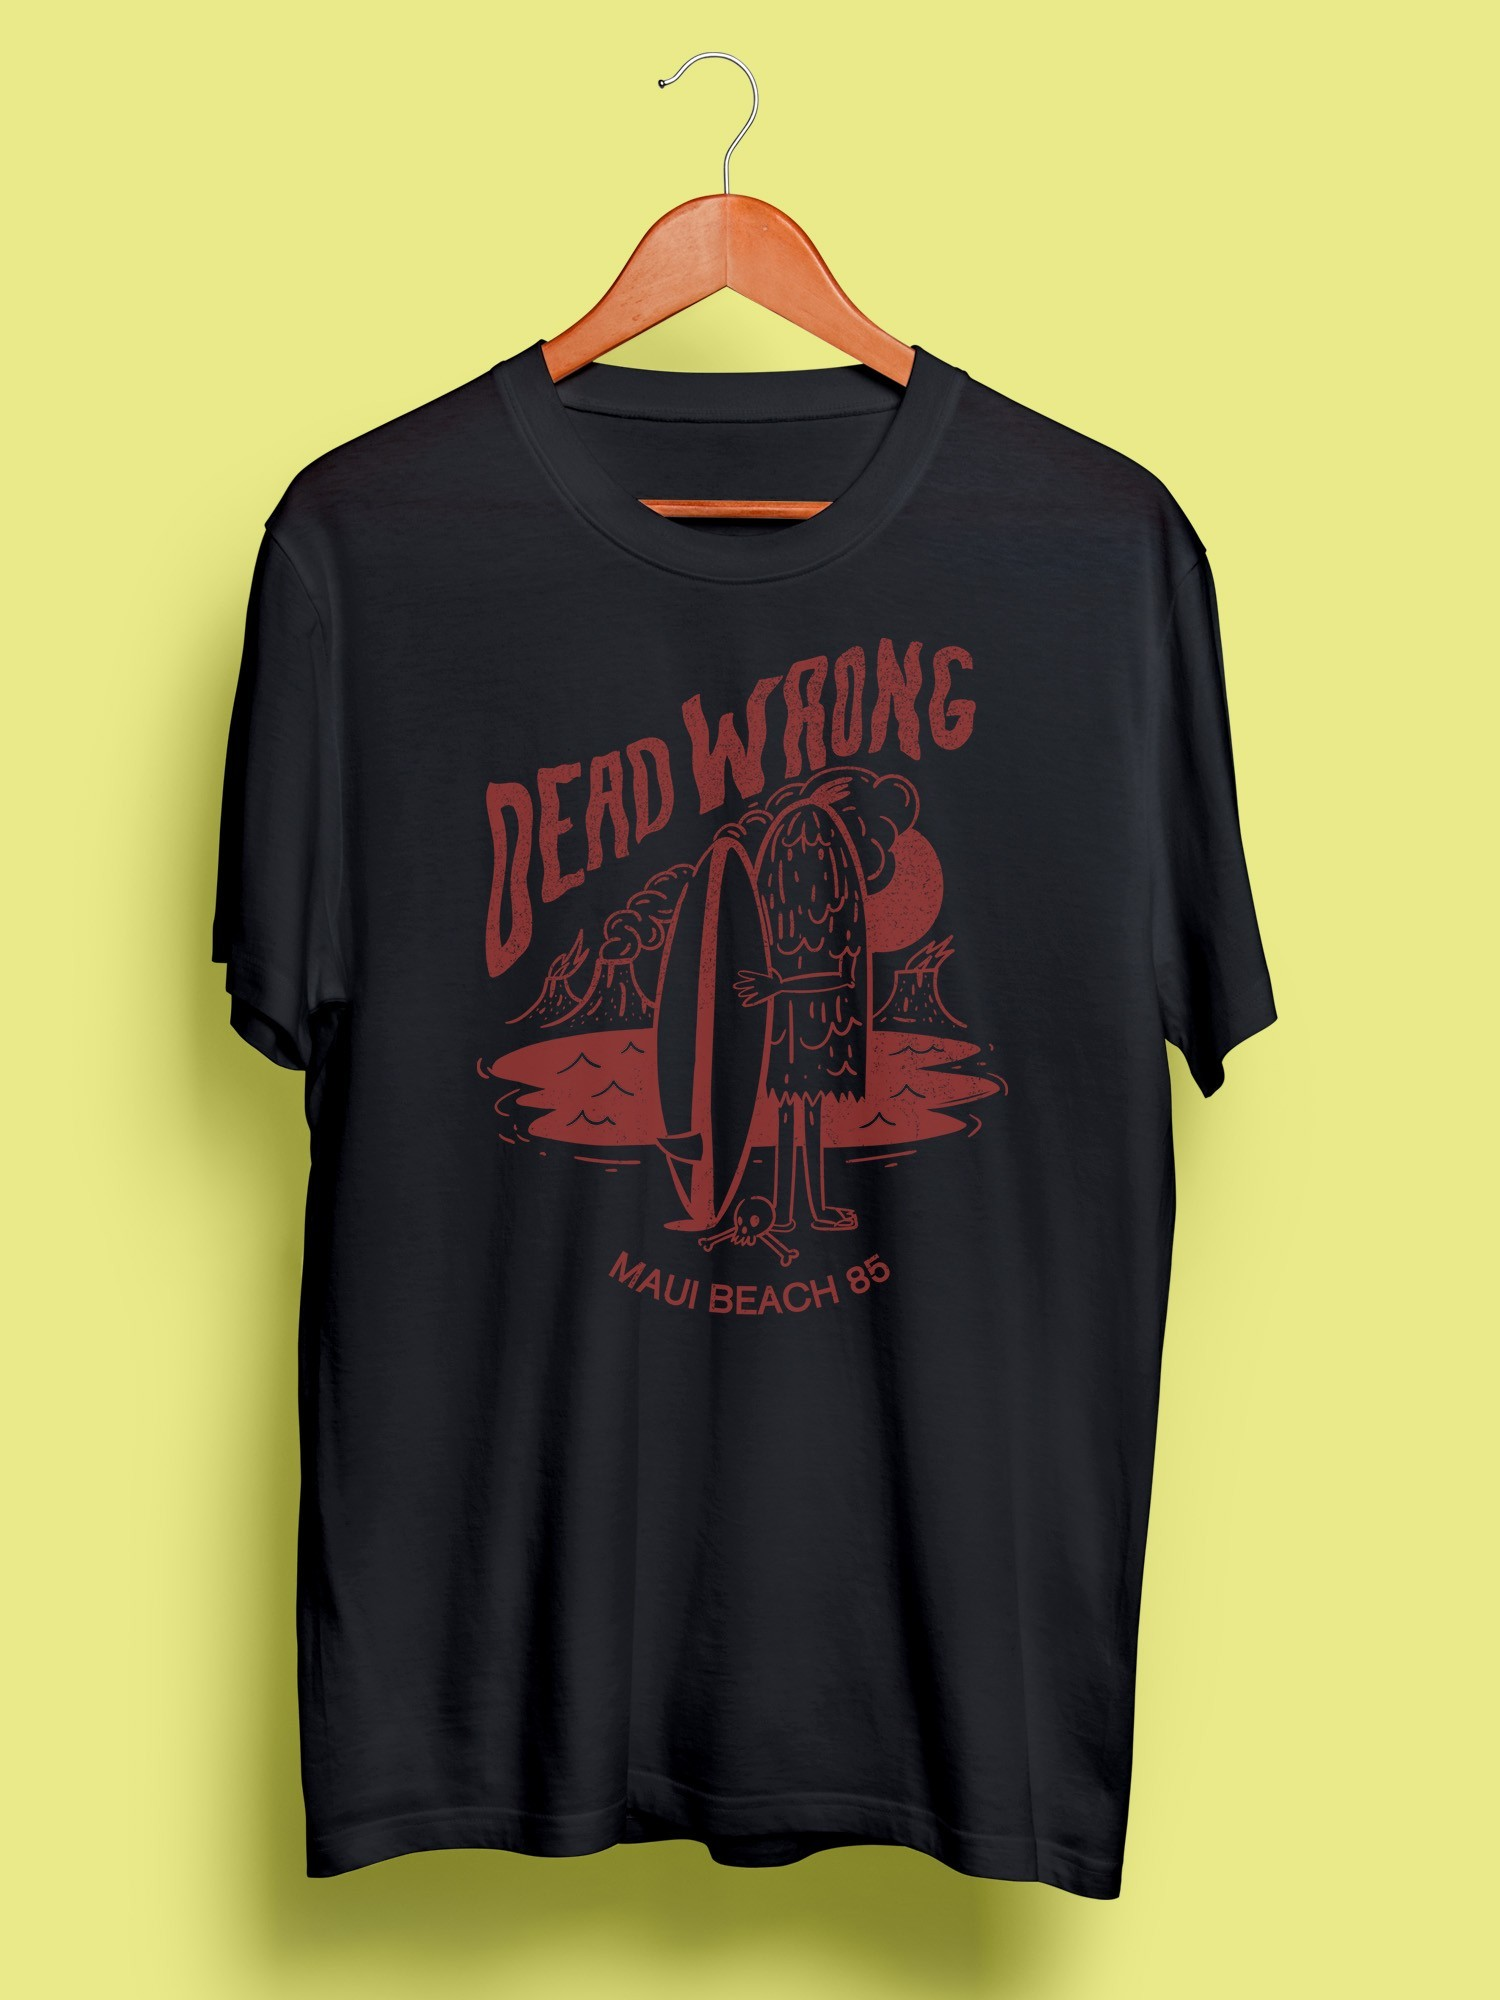 Camiseta Capitán Dead Wrong Black